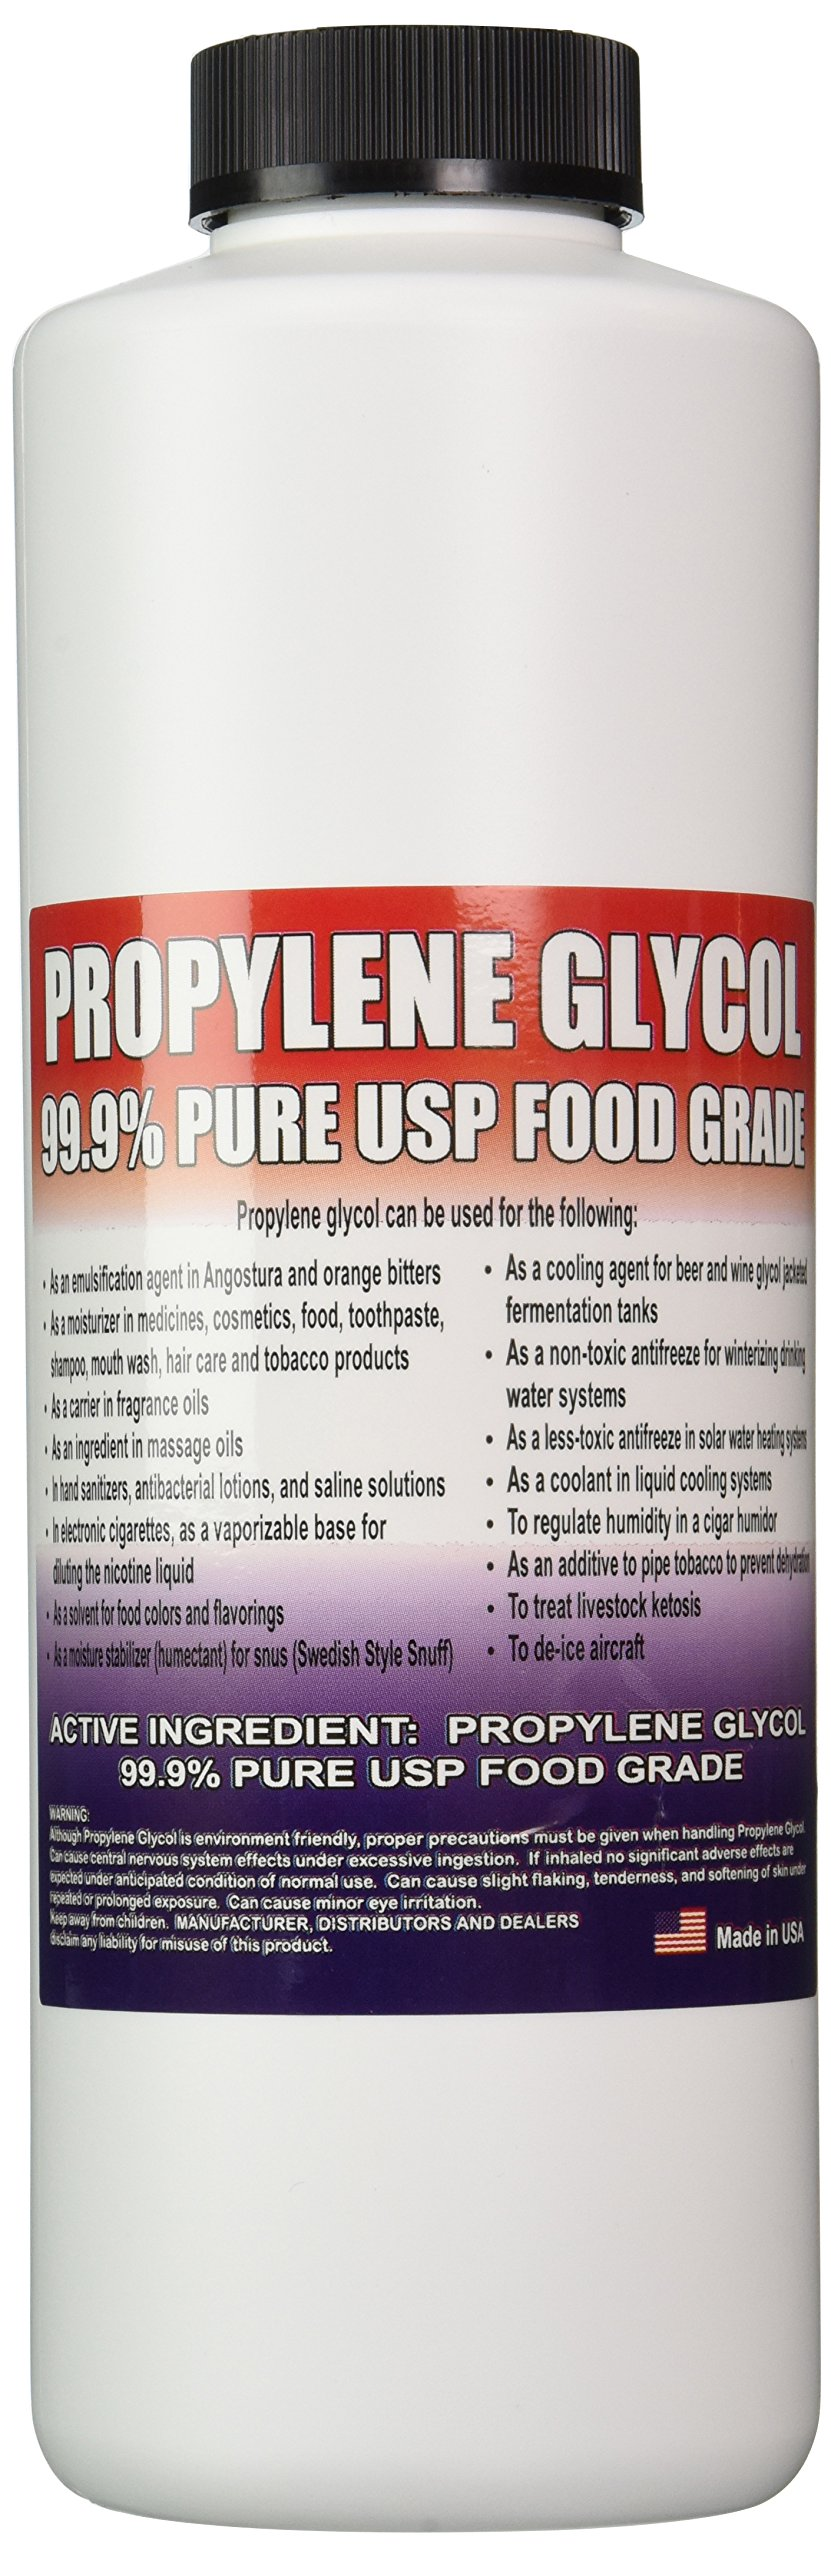 Propylene Glycol - Food Grade USP - 1 Quart (32 Oz.)